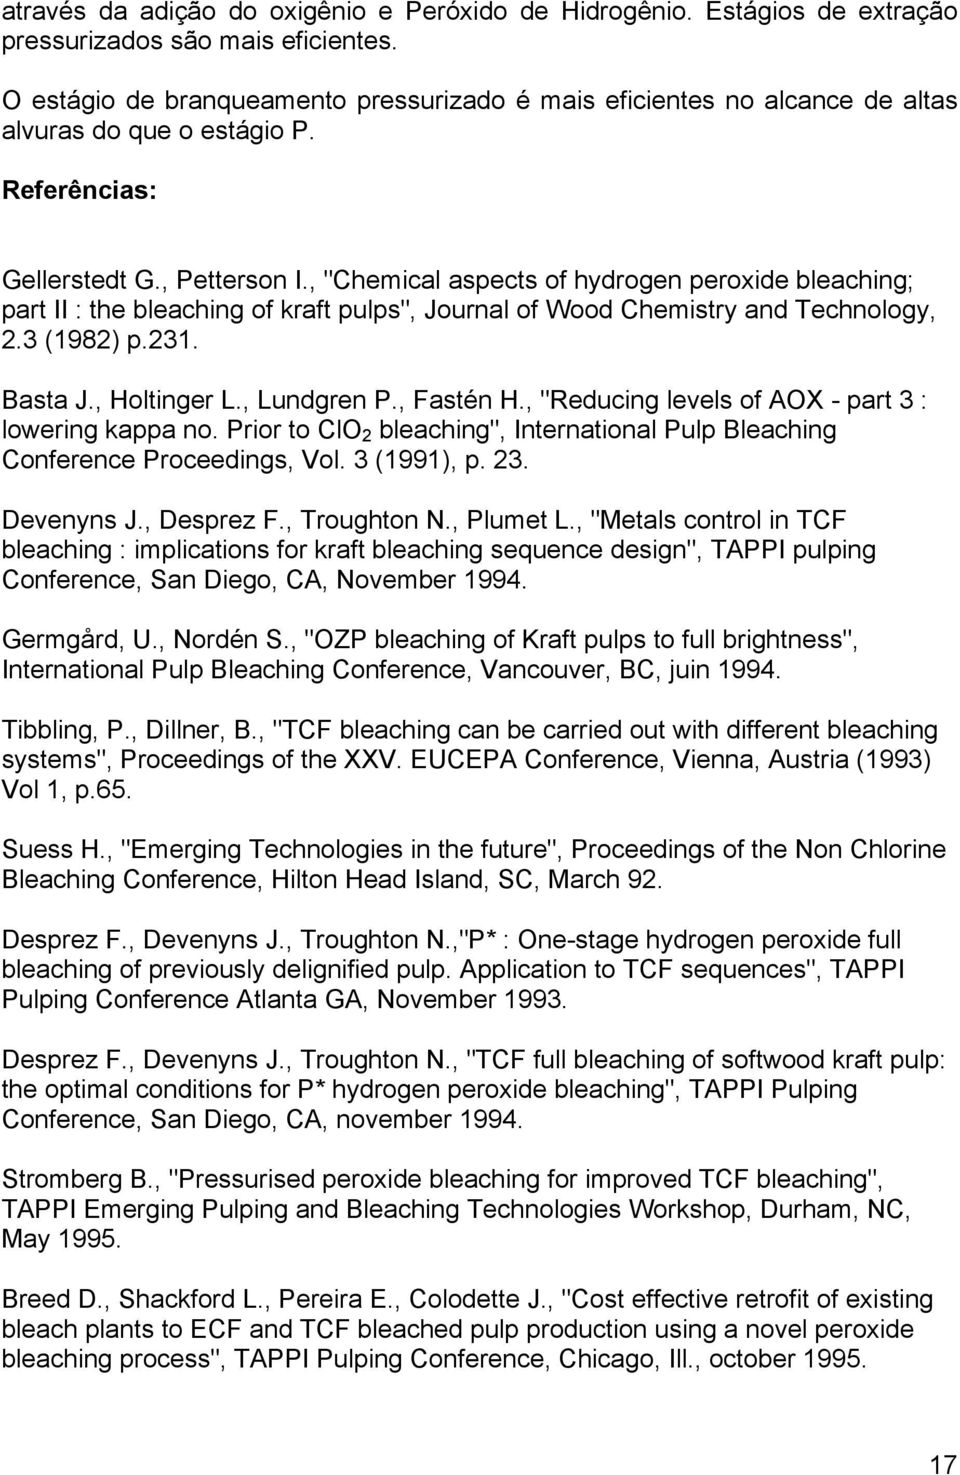 ", ""Chemical aspects of hydrogen peroxide bleaching; part II : the bleaching of kraft pulps"", Journal of Wood Chemistry and Technology, 2.3 (1982) p.231. Basta J., Holtinger L., Lundgren P., Fastén H."